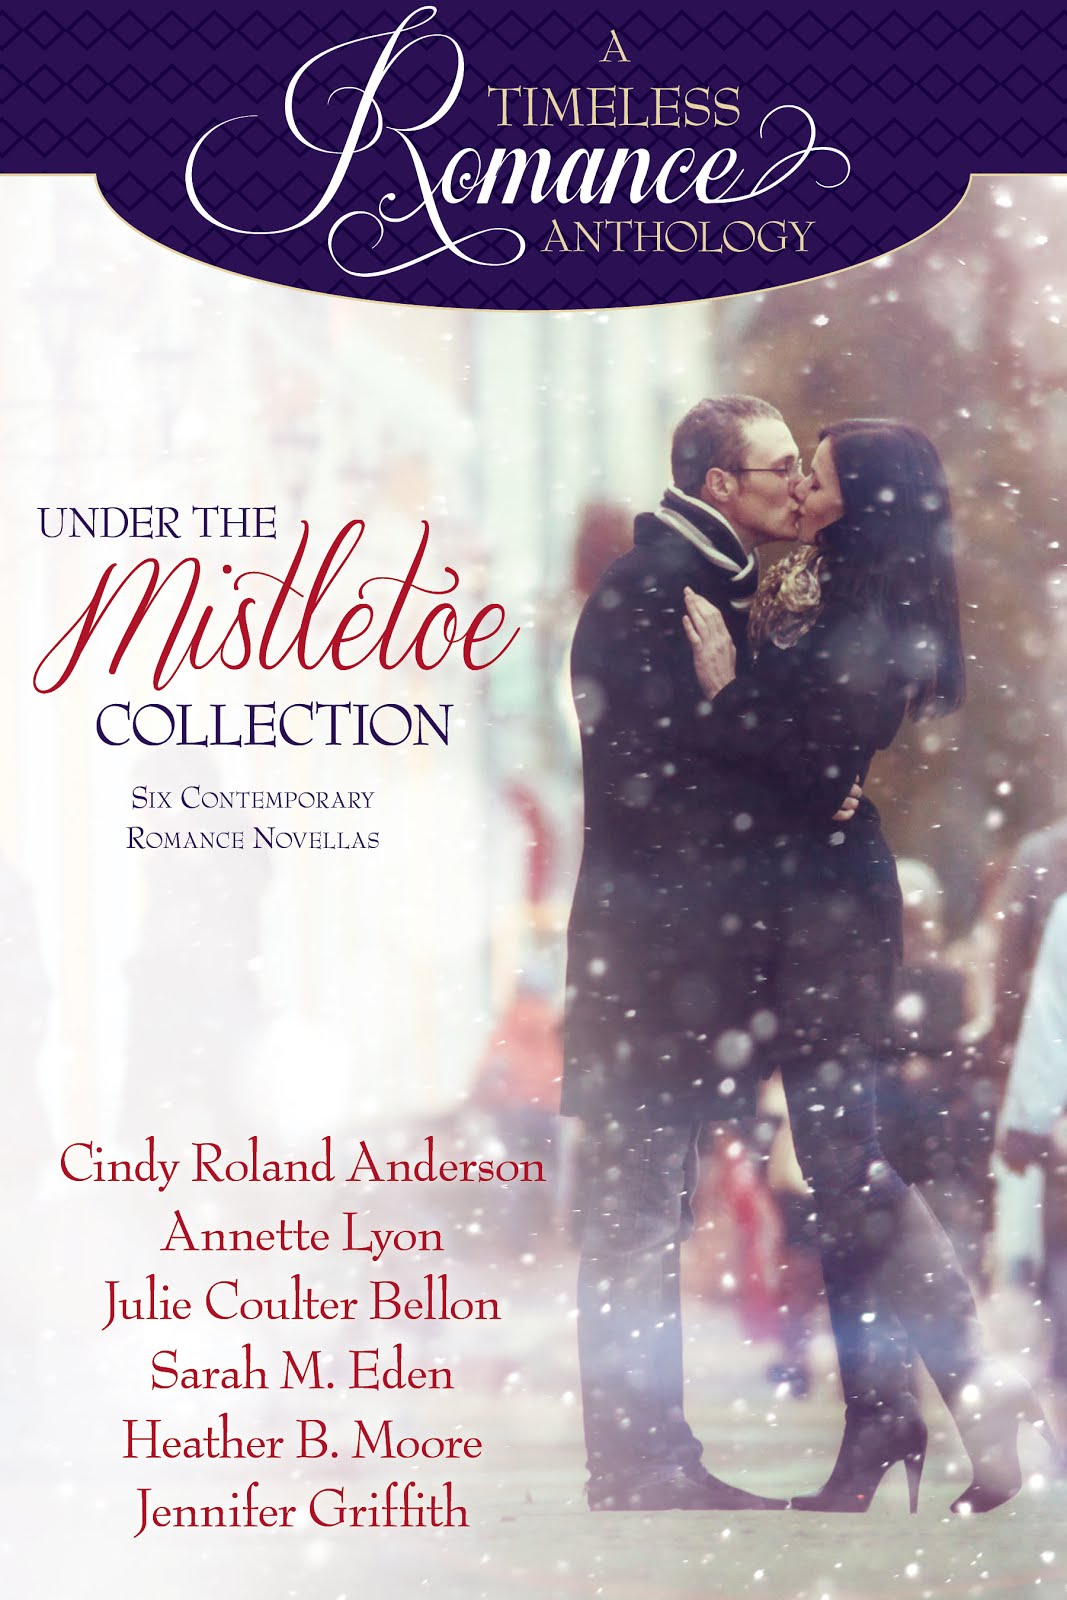 Under the Mistletoe Collection